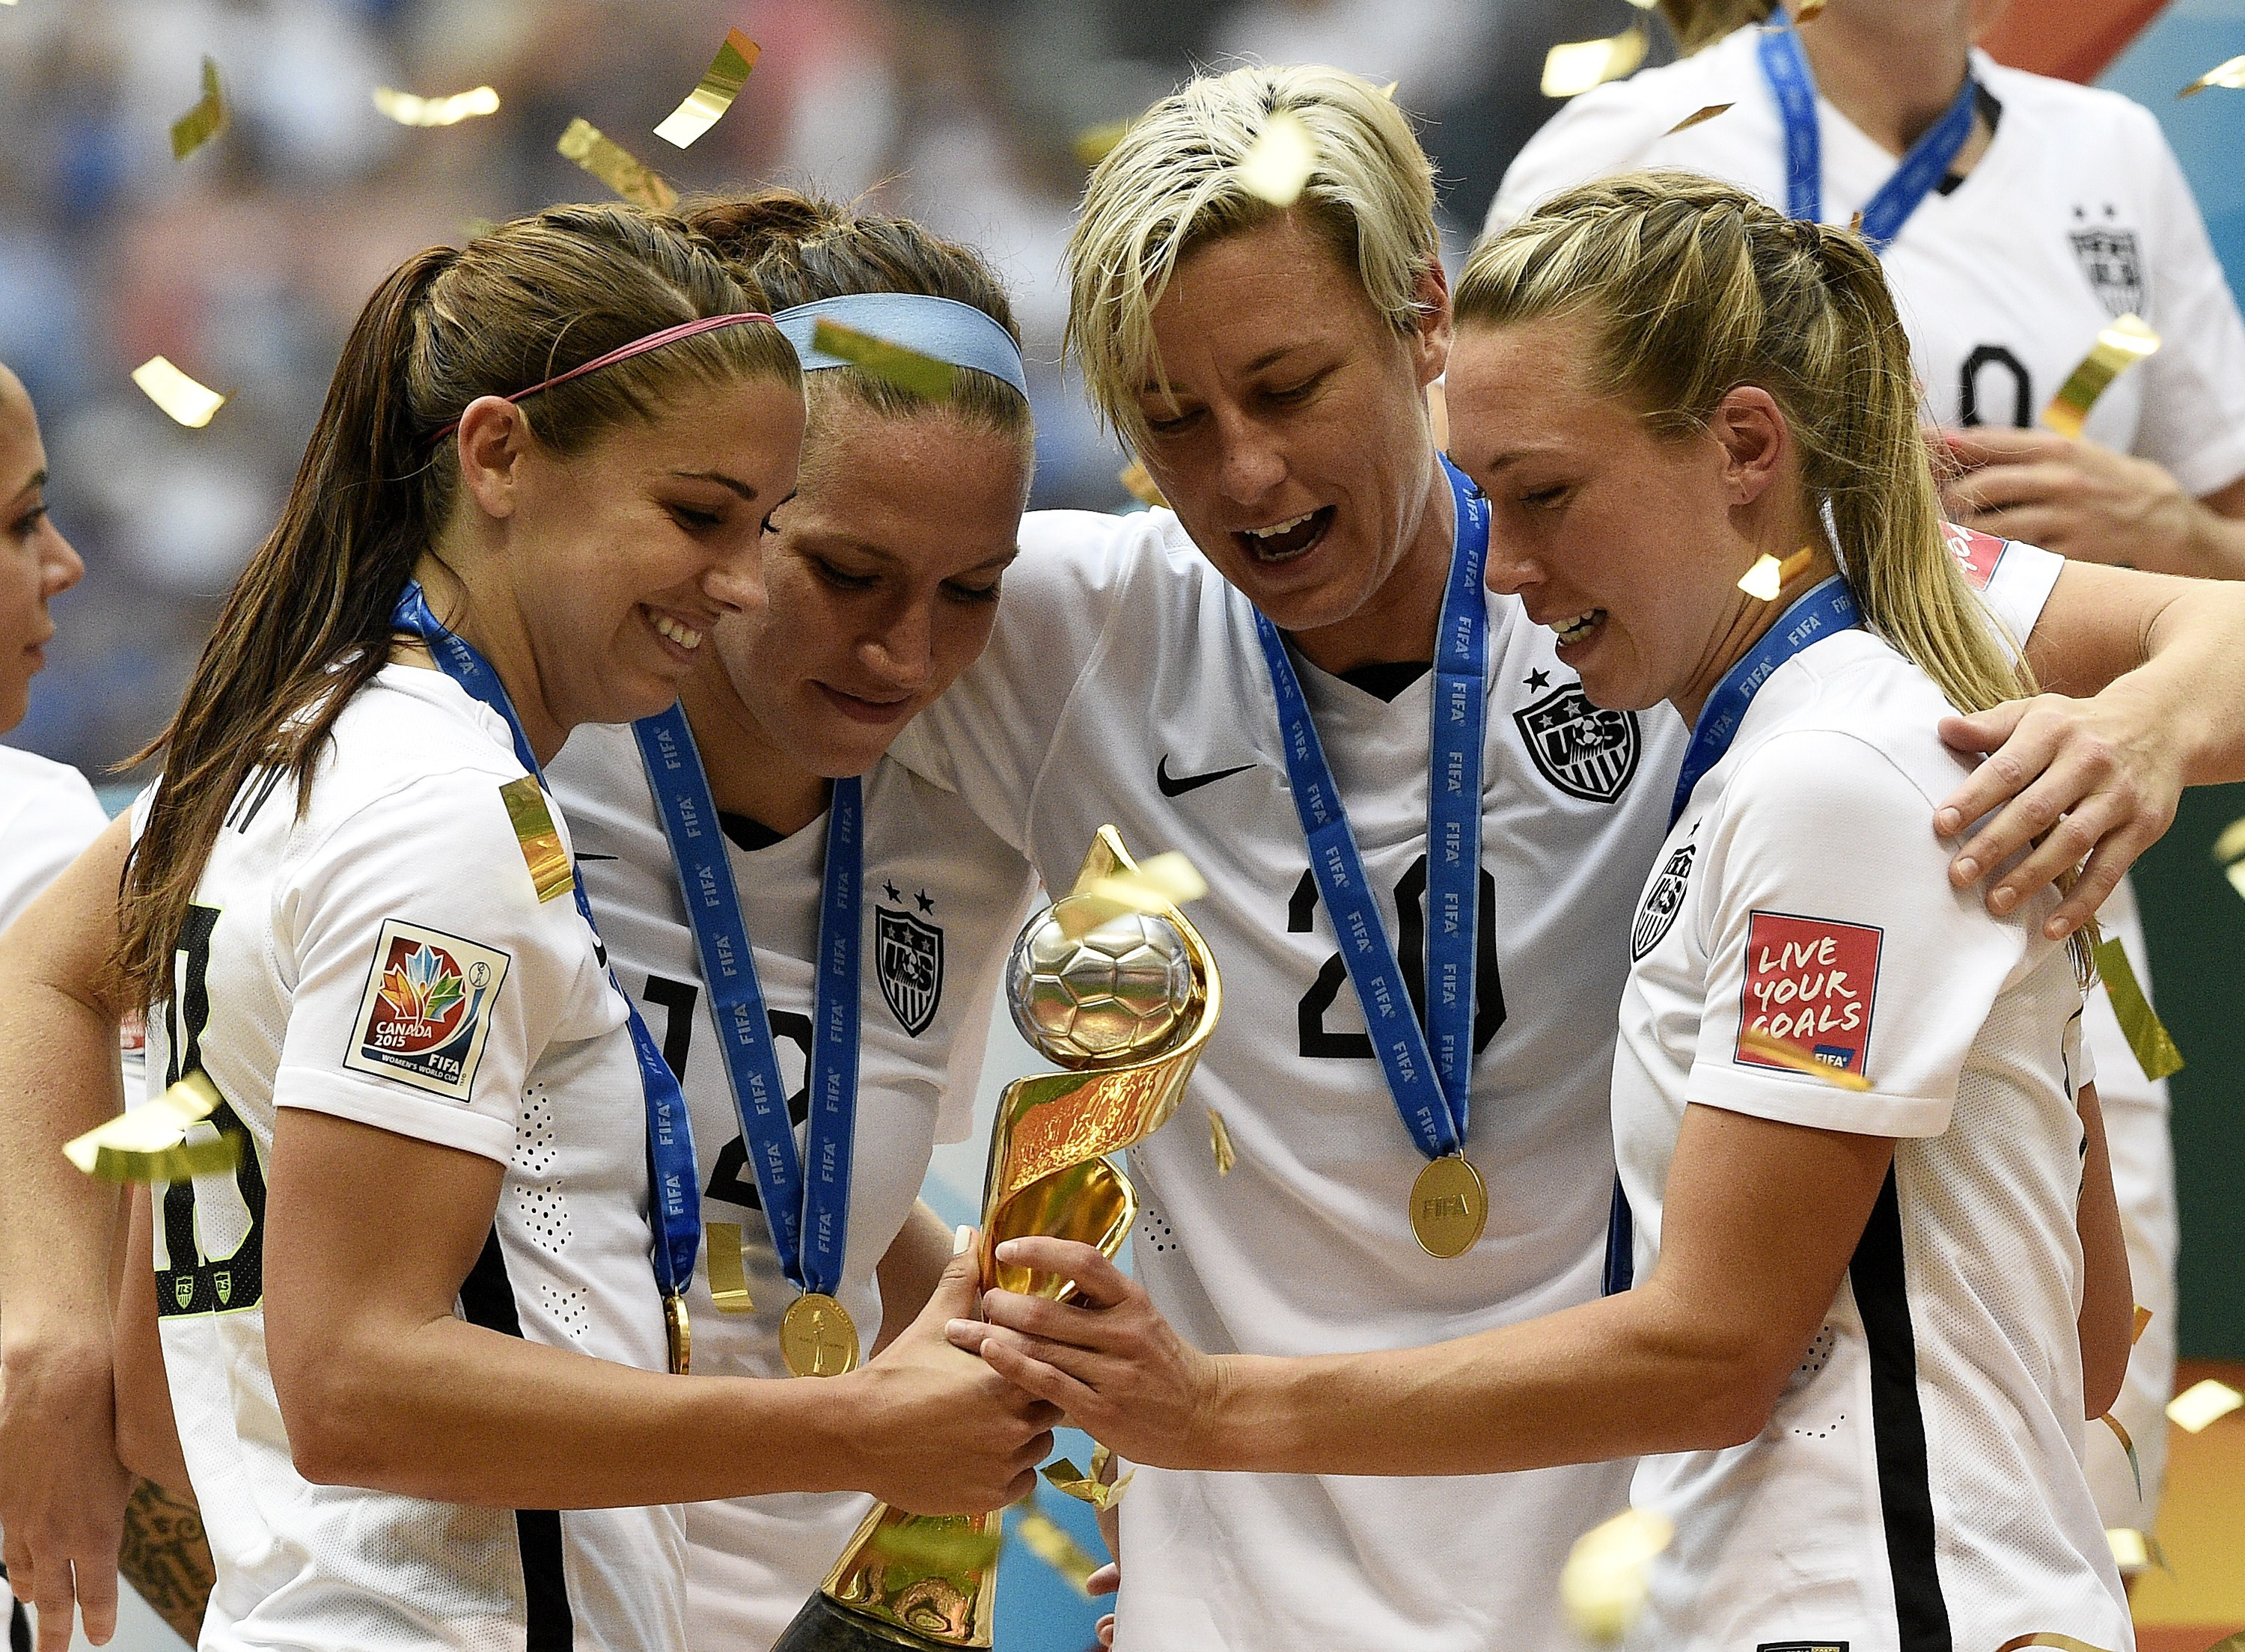 L-R: Alex Morgan, Lauren Holiday, Abby Wambach and Whitney Engen celebrate after winning the final 2015 FIFA Women's World Cup match between USA and Japan at the BC Place Stadium in Vancouver on July 5, 2015.